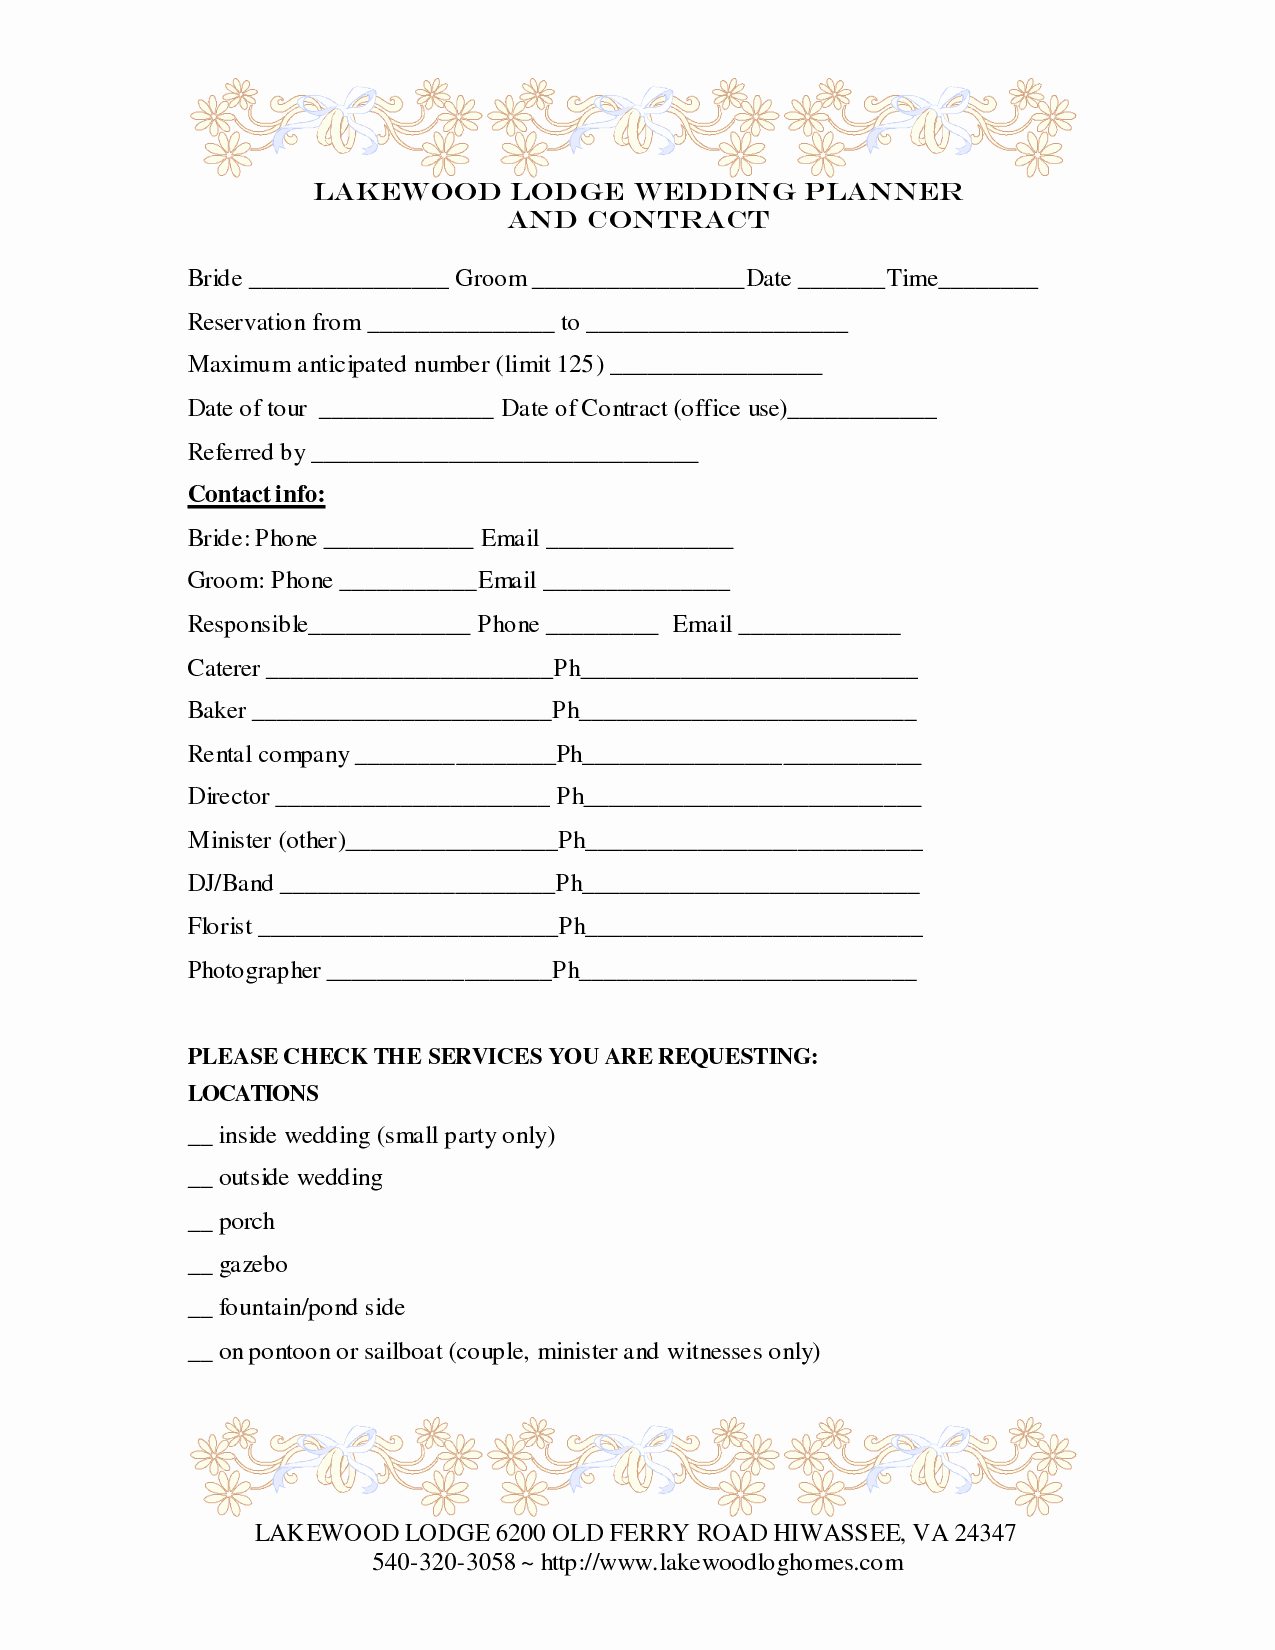 7 Best Of Printable Wedding Planner Contract